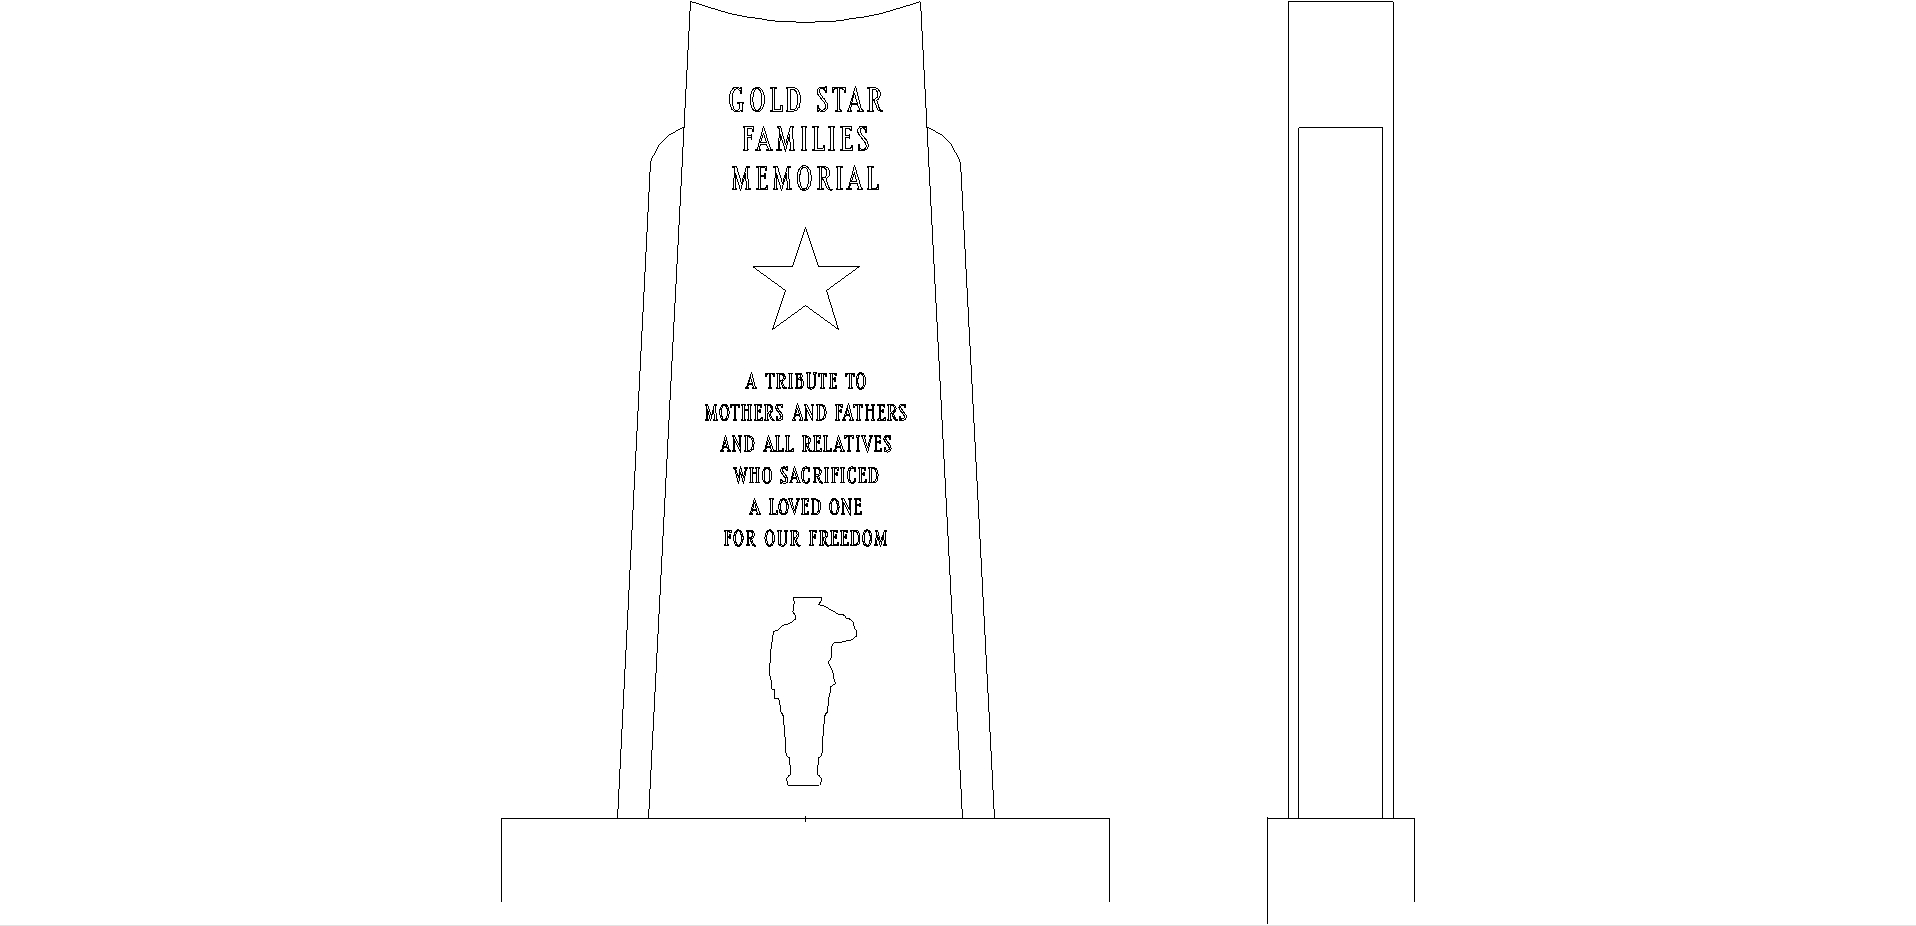 GOLD STAR FAMILIES Monument design